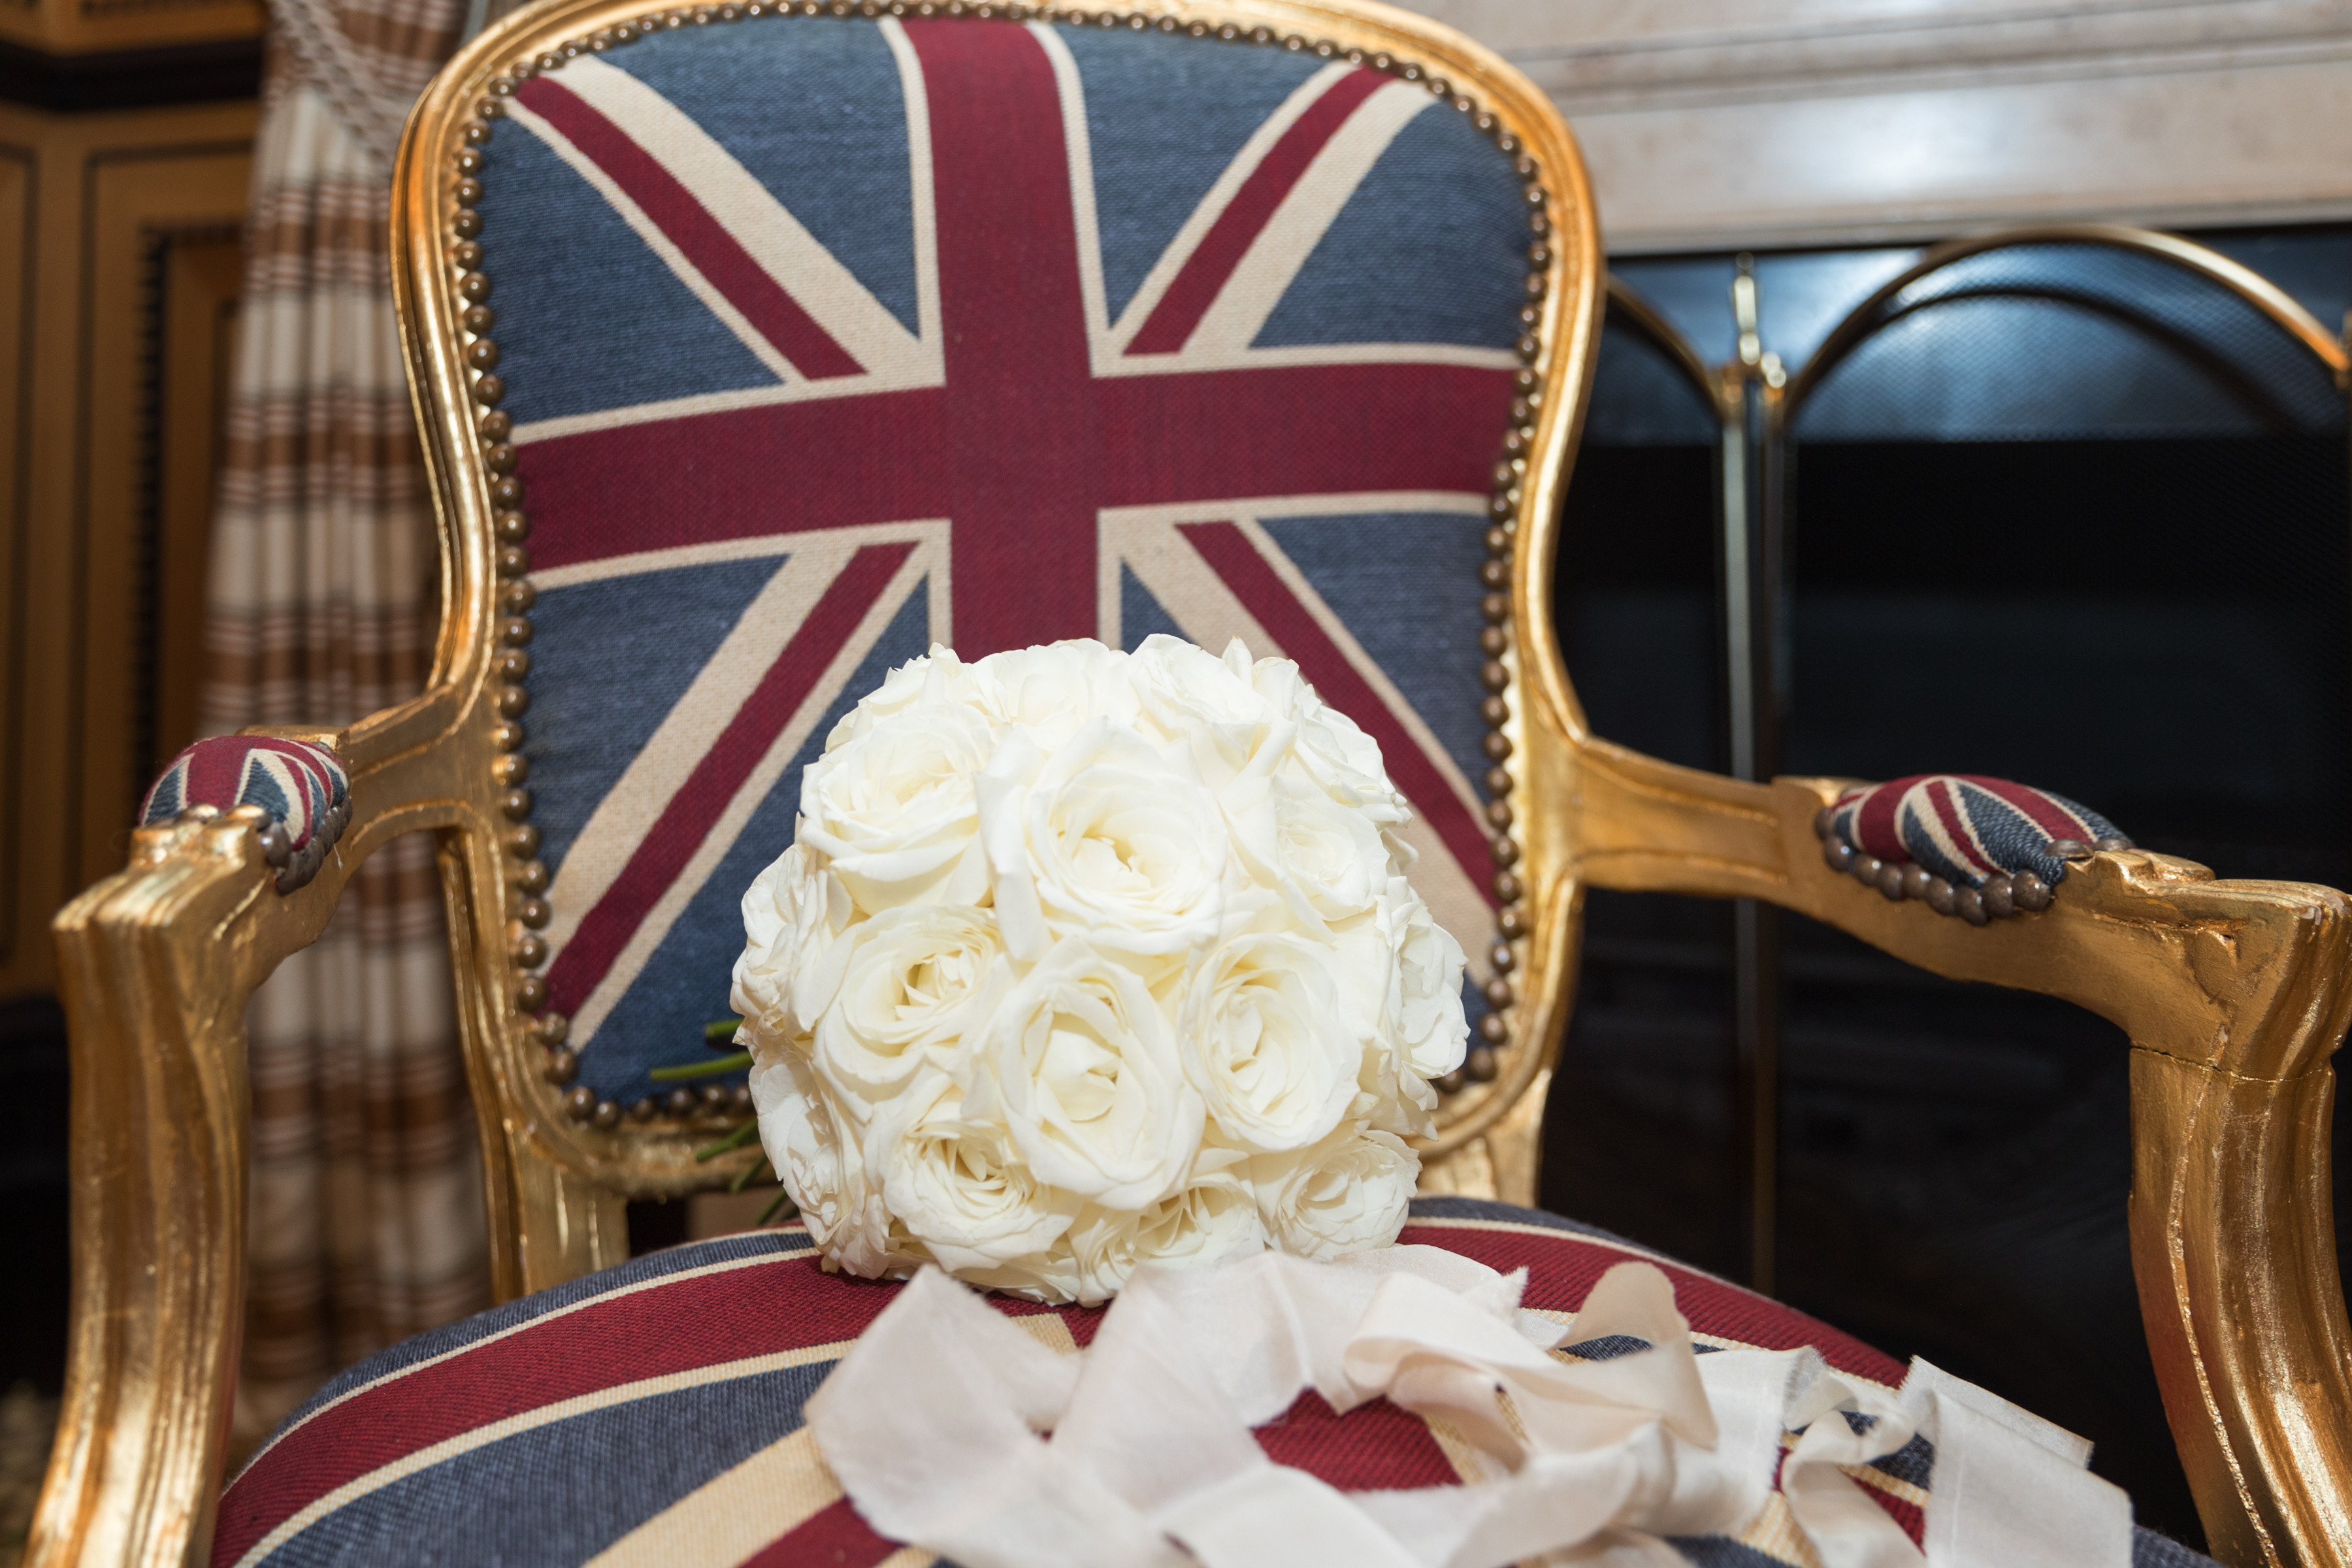 Weddings at The Lanesborough